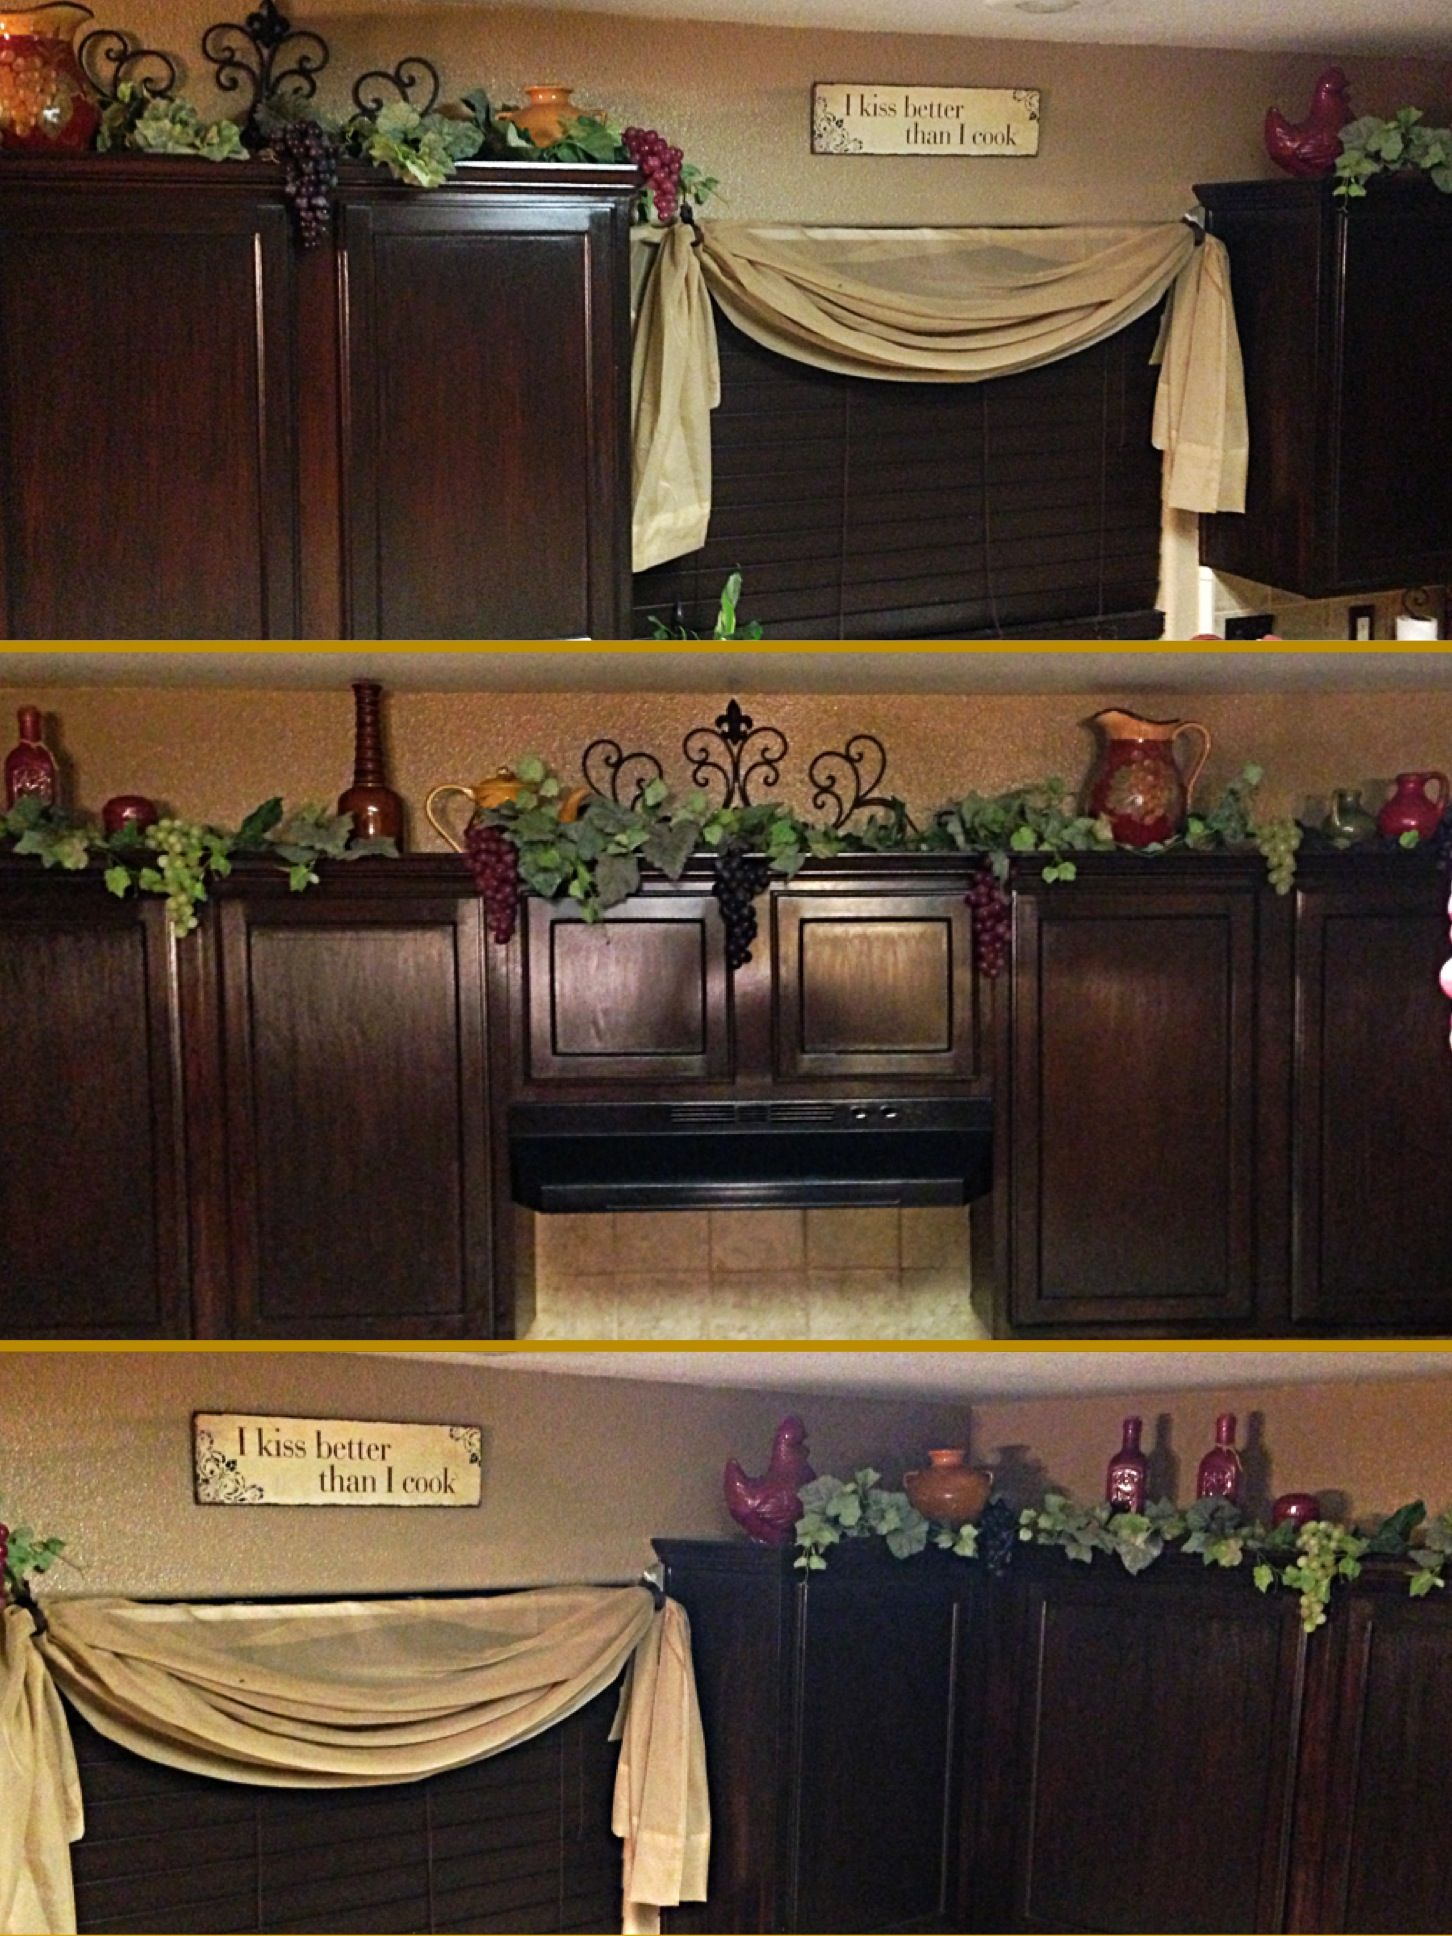 Decor On Top On Kitchen Cabinets Grapes Vines And Porcelain Pots